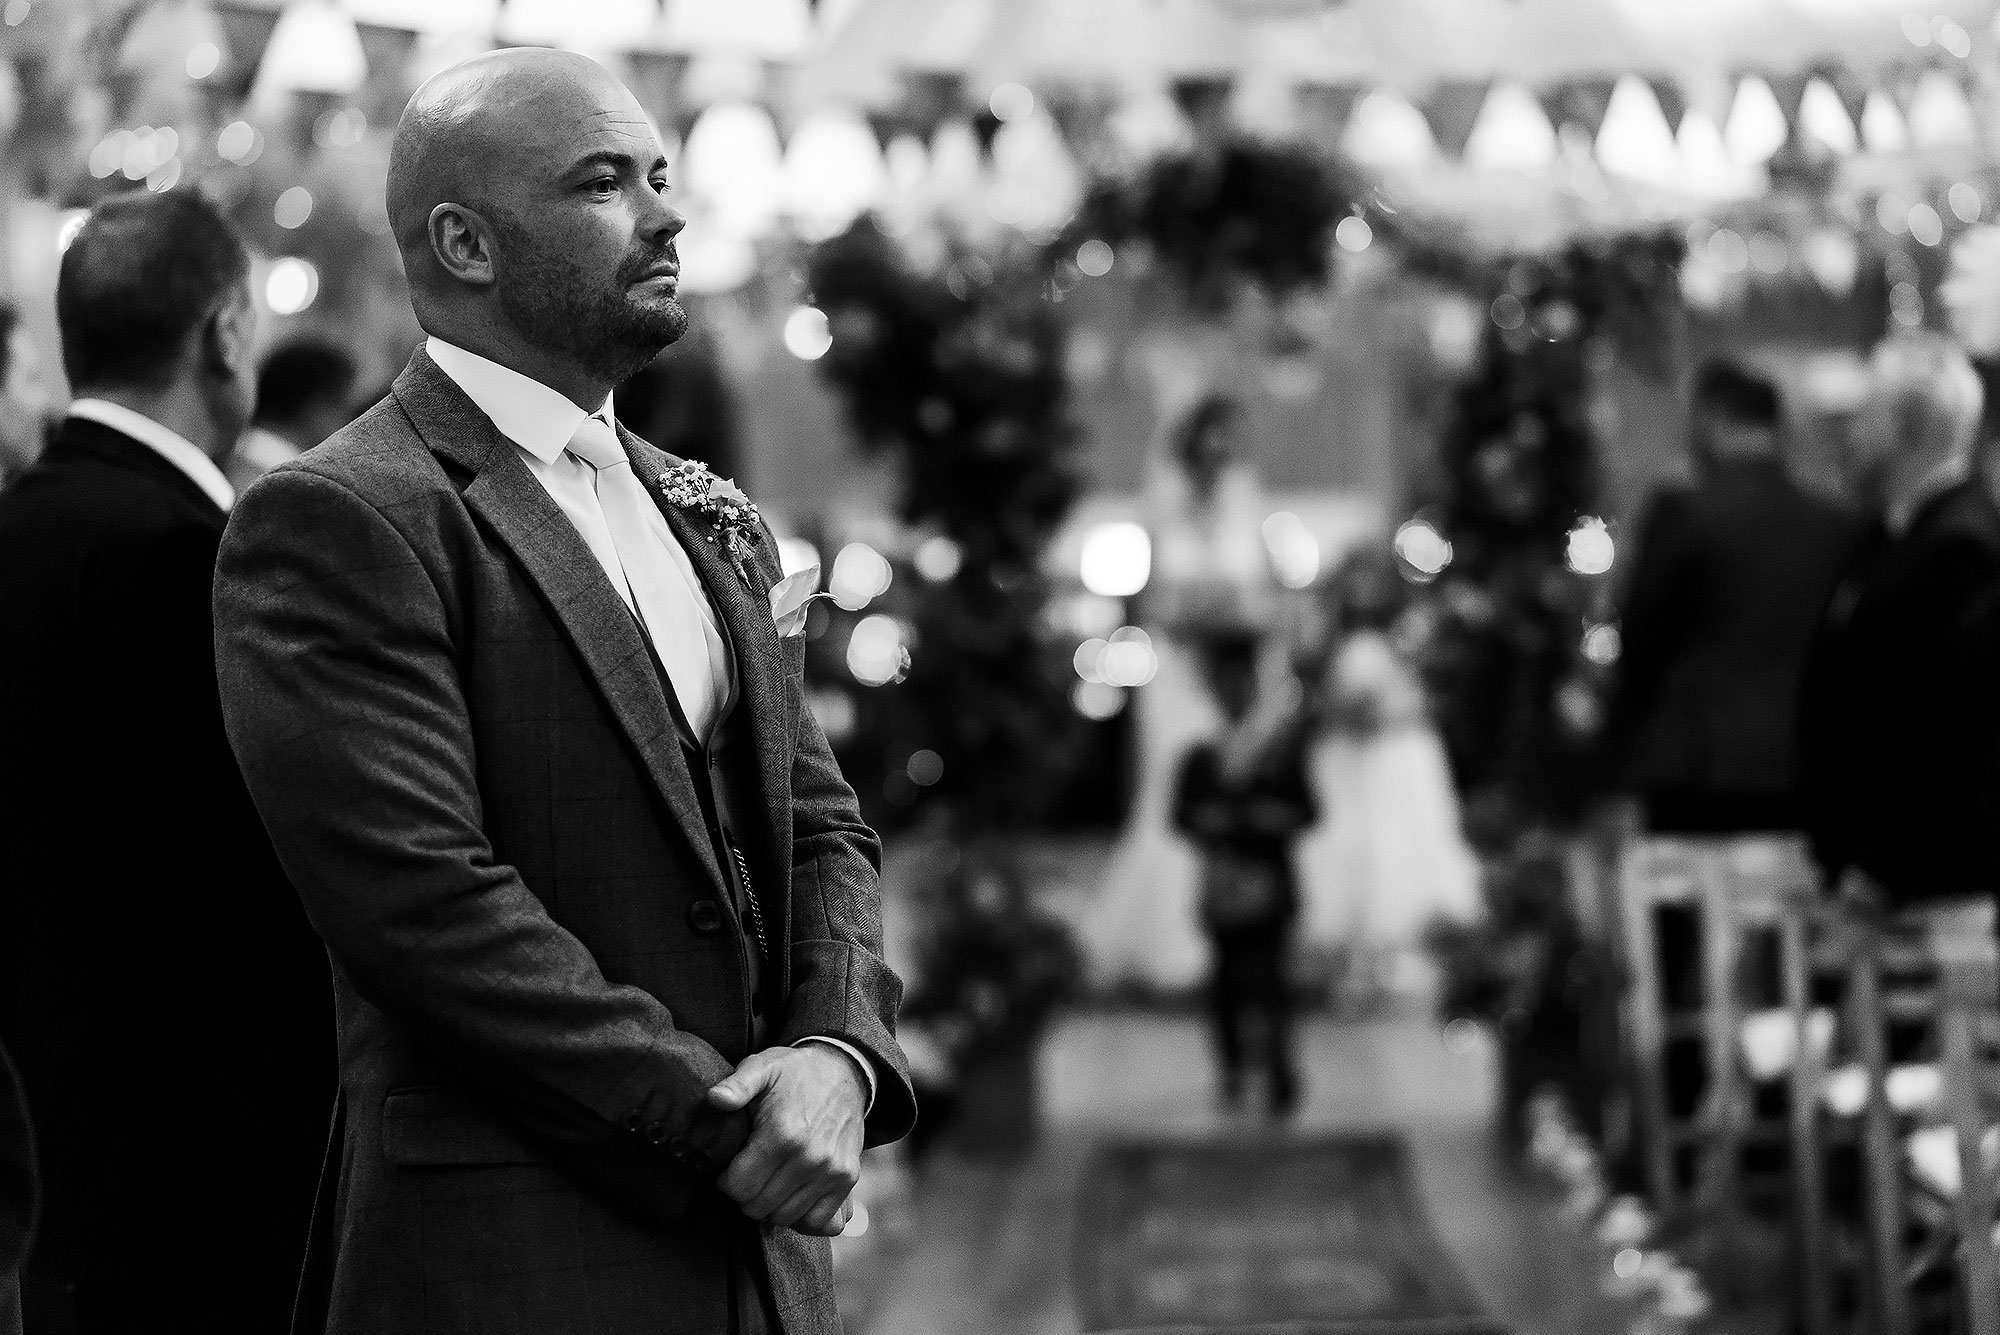 Groom looking nervous walking at the front of the wedding aisle | Summer wedding at Wellbeing Farm - Toni Darcy Photography